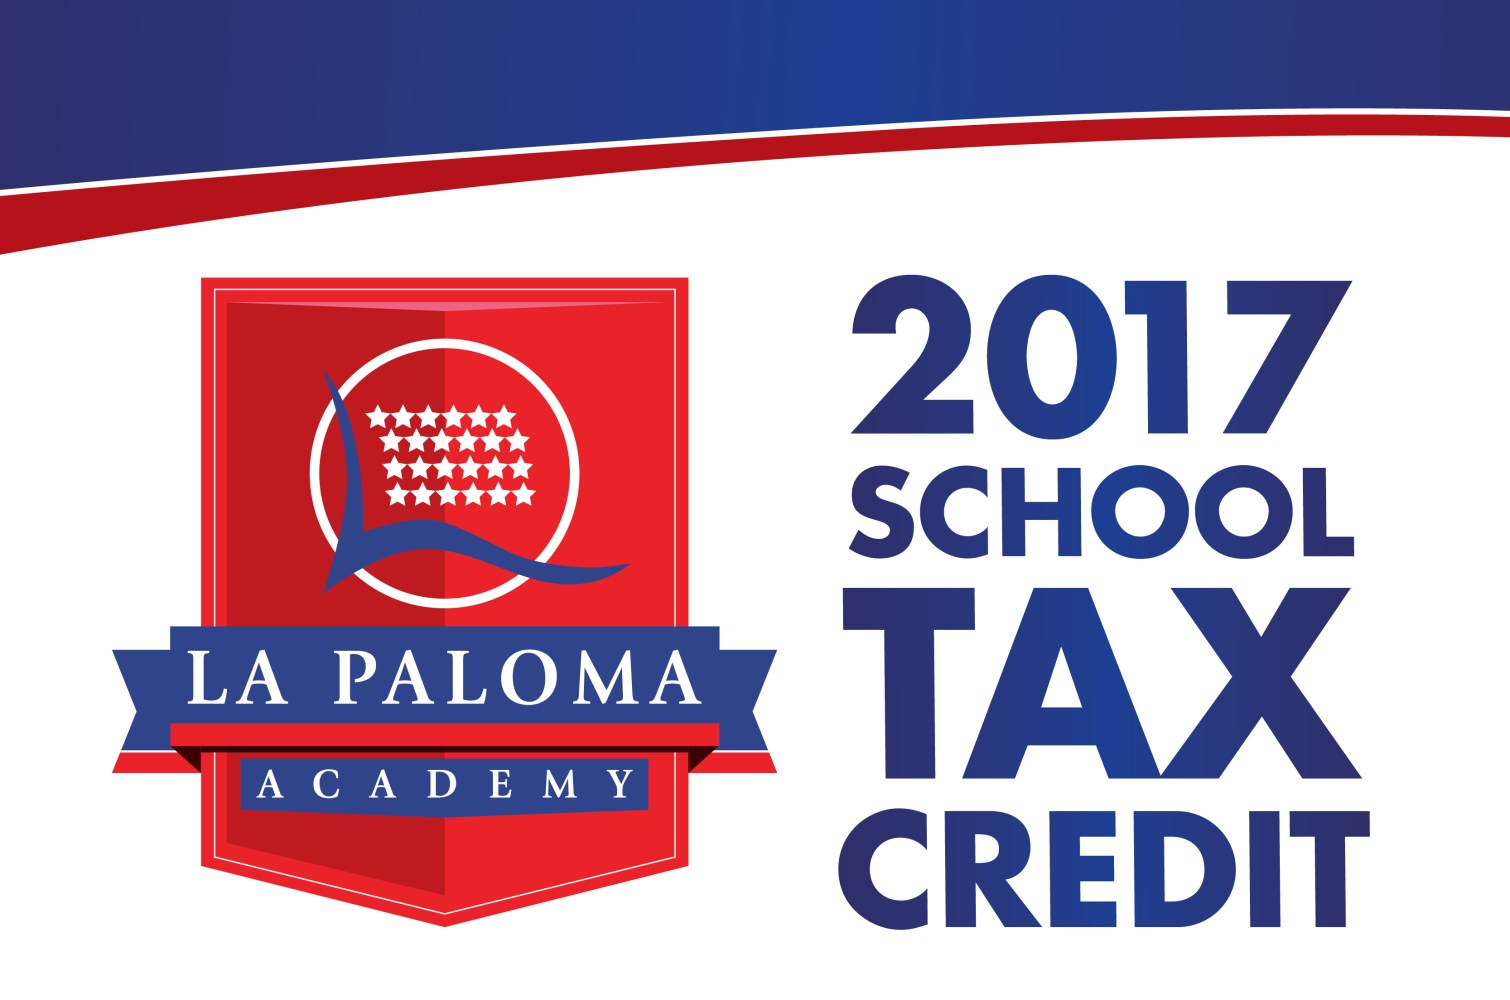 Donate to La Paloma and Receive a Full State Tax Credit